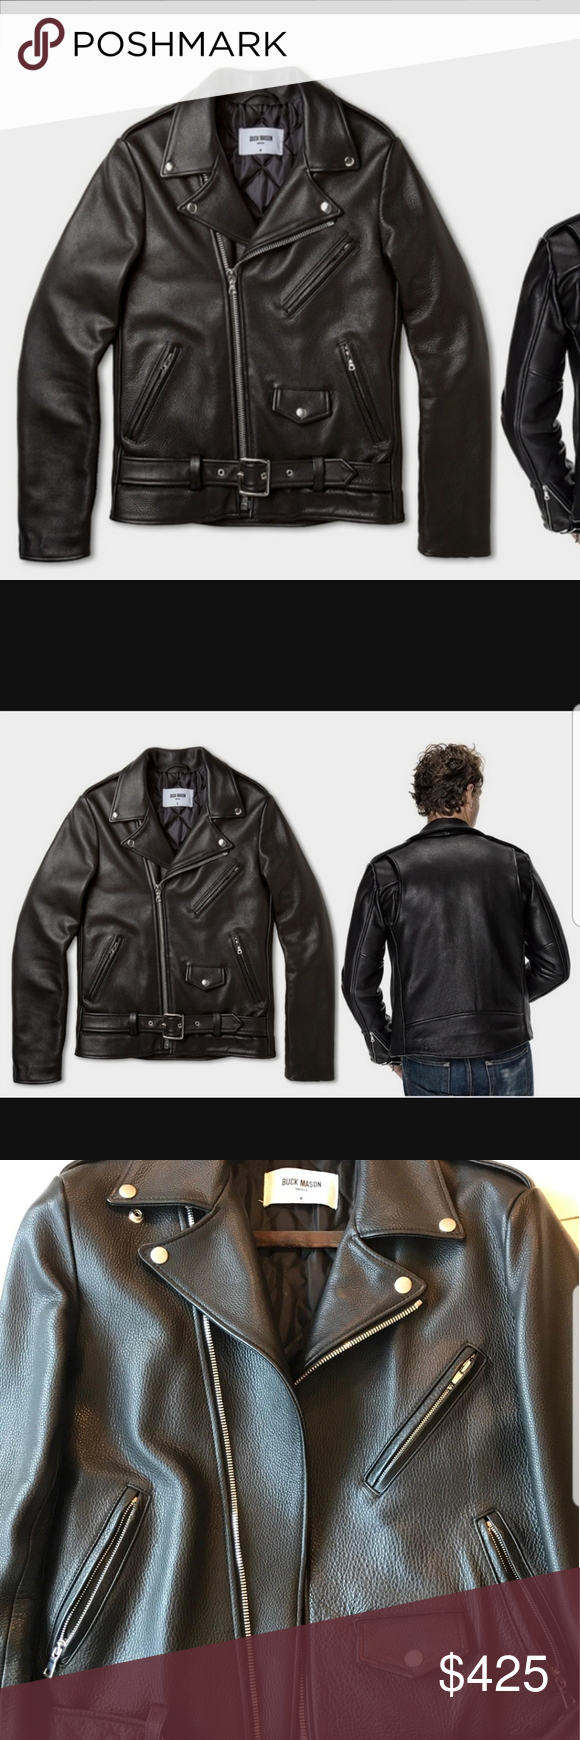 Buck Mason Leather Motorcycle Jacket in 2020 (With images